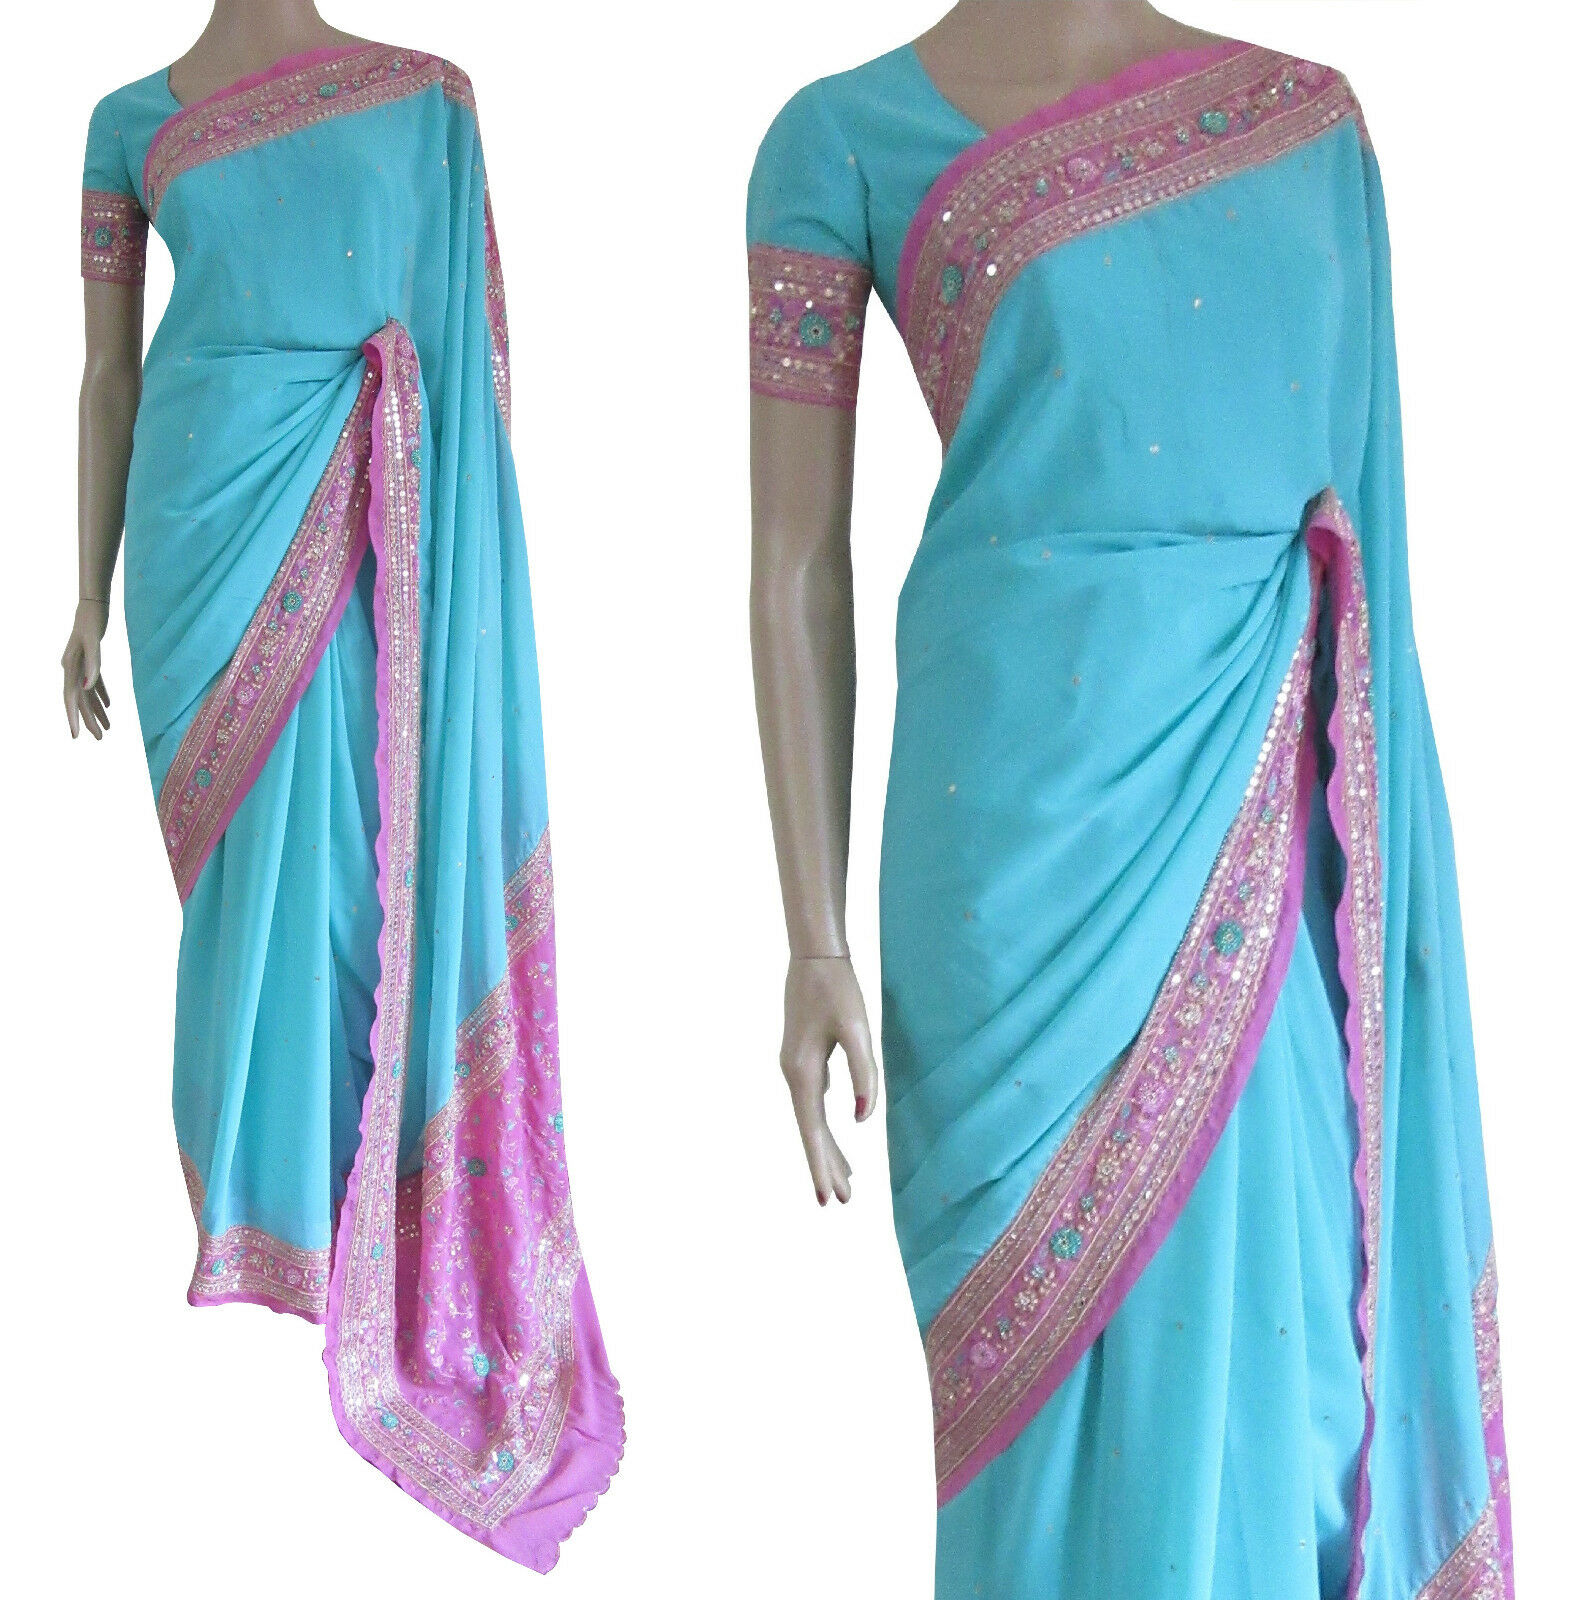 Party Wear Bollywood Traditional Light bluee & Pink Floral Work Bridal Saree SALE